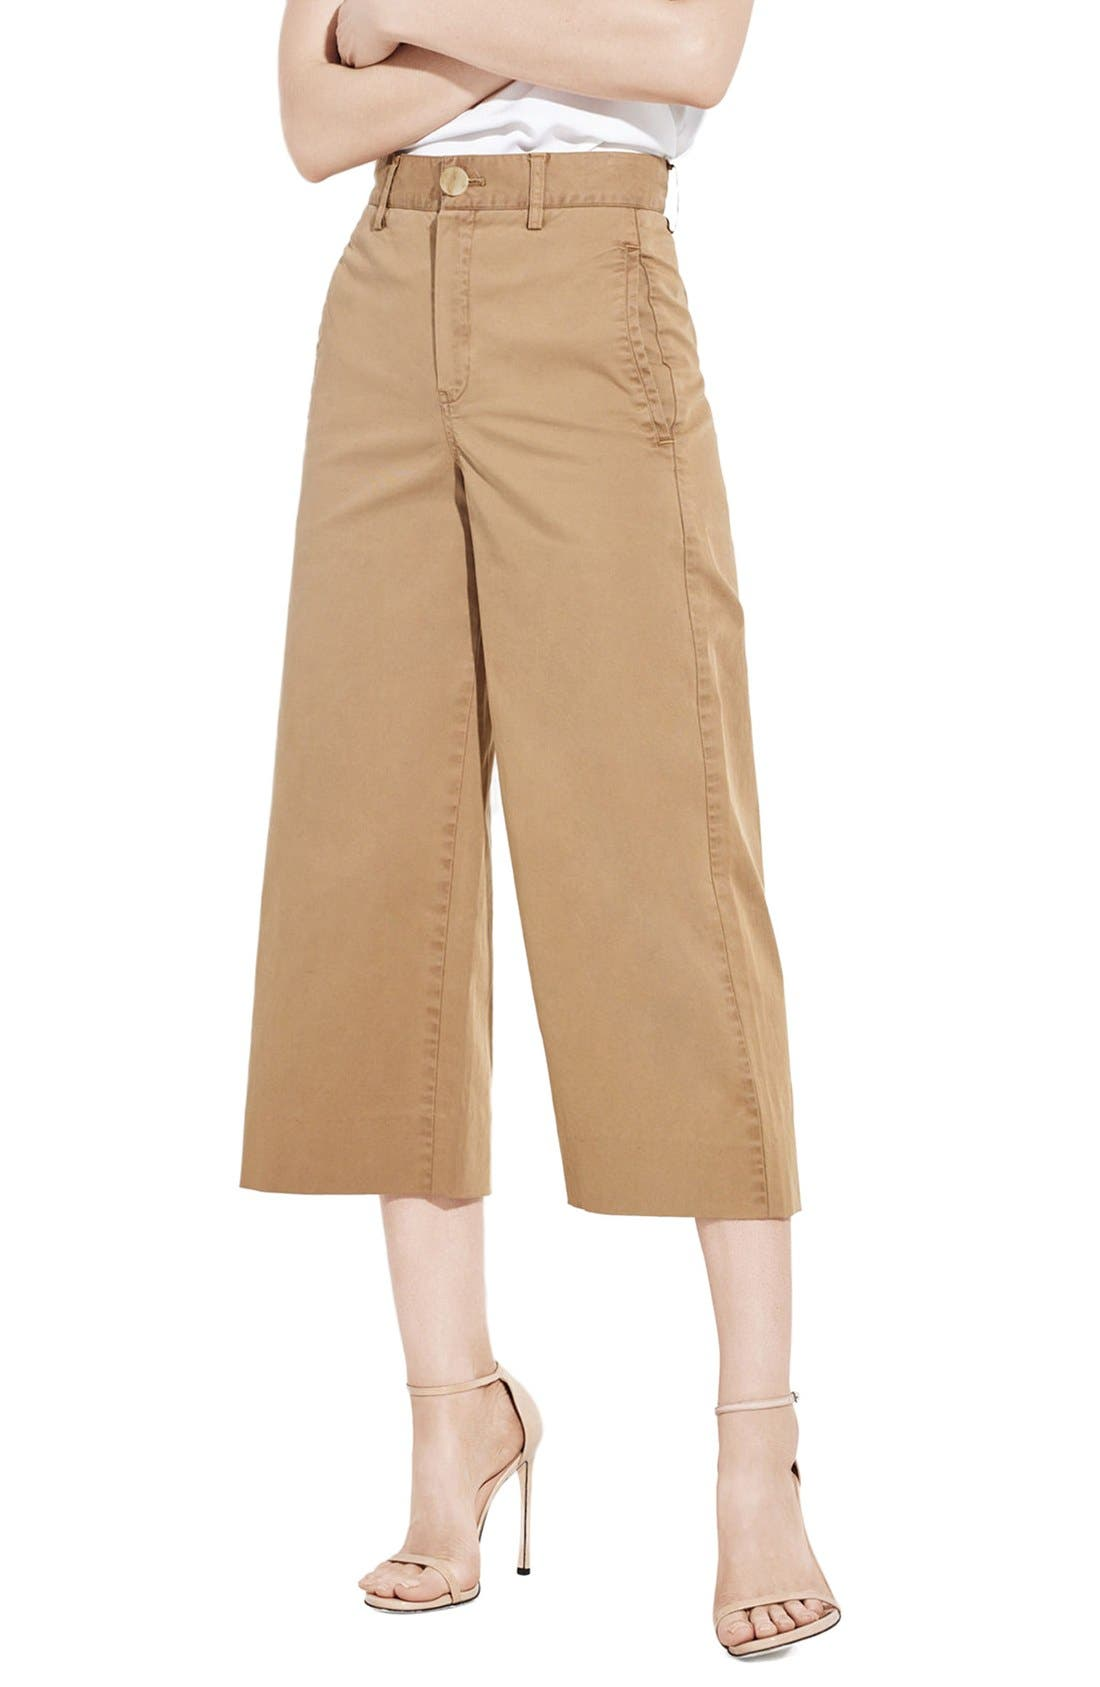 Alternate Image 1 Selected - AYR 'The Gaucho' Pants